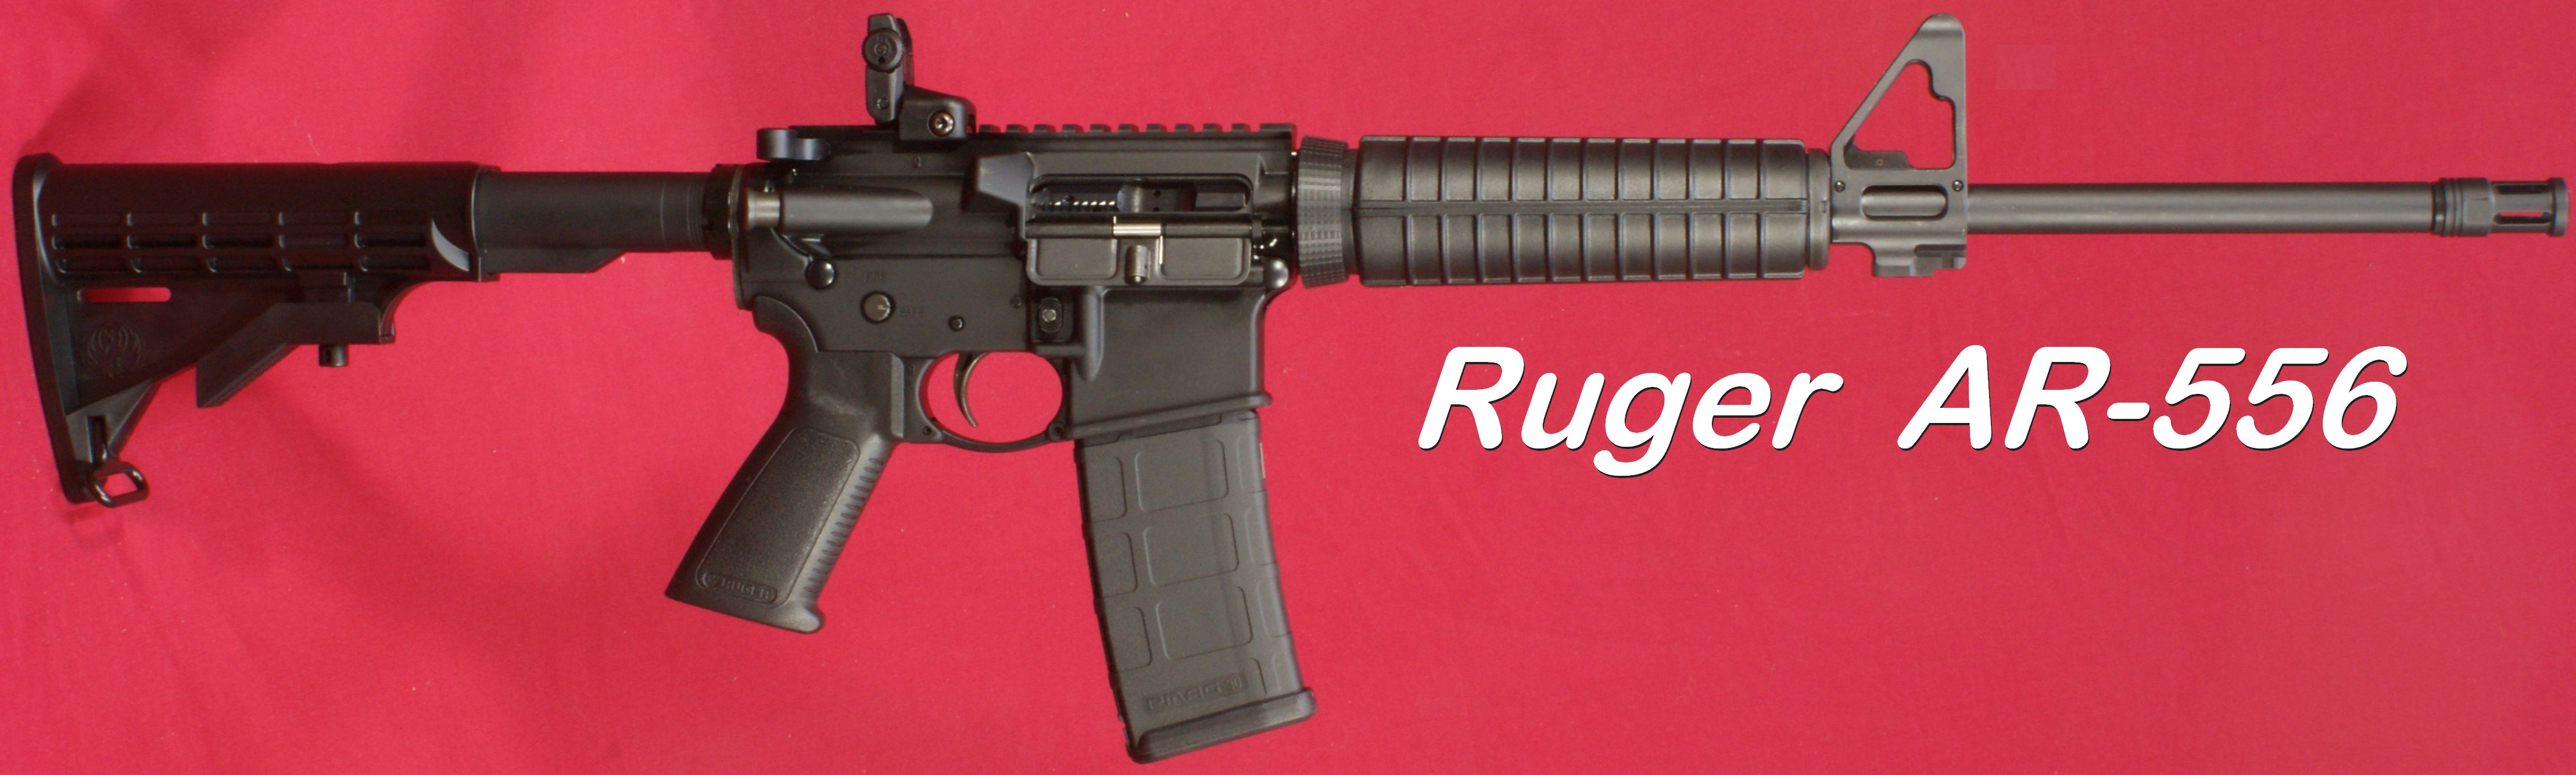 ruger ar 15 exploded diagram 95 honda civic fuse schematic wiring schematics 556 review part 4 disassembly and internal features rh gunsumerreports com bolt